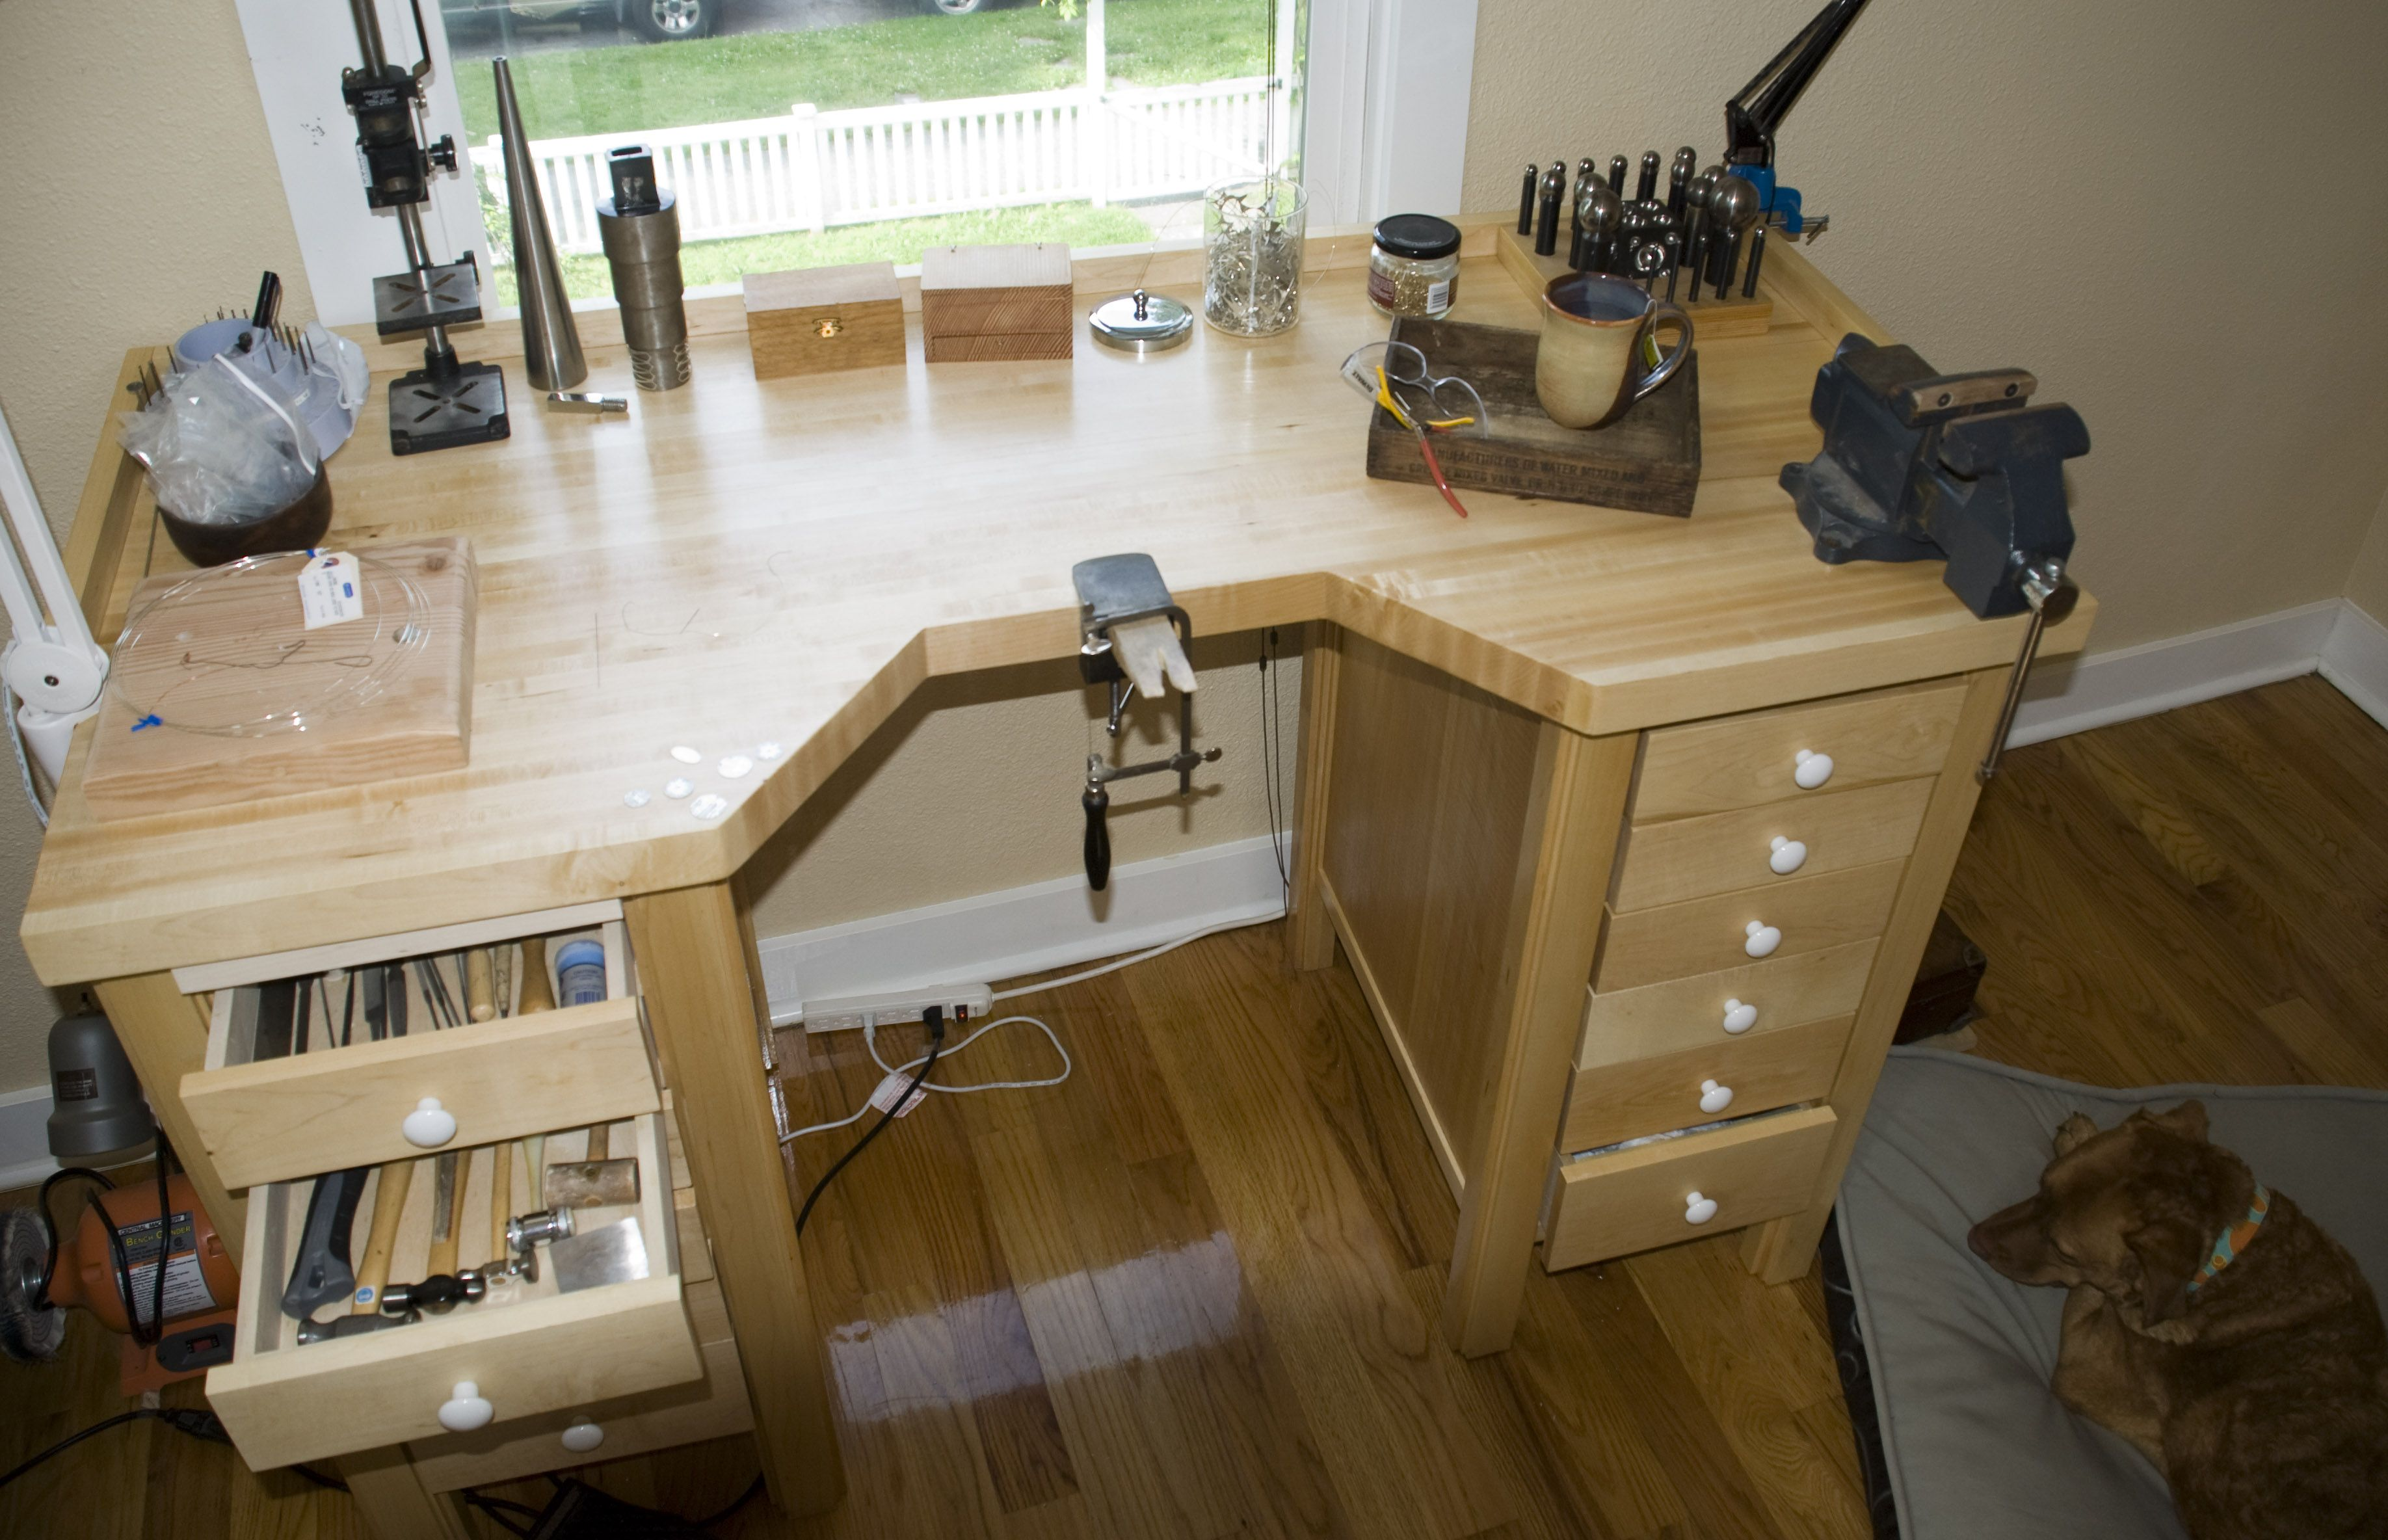 The Most Valuable Thing I Own Woodworking Shop Jewelers